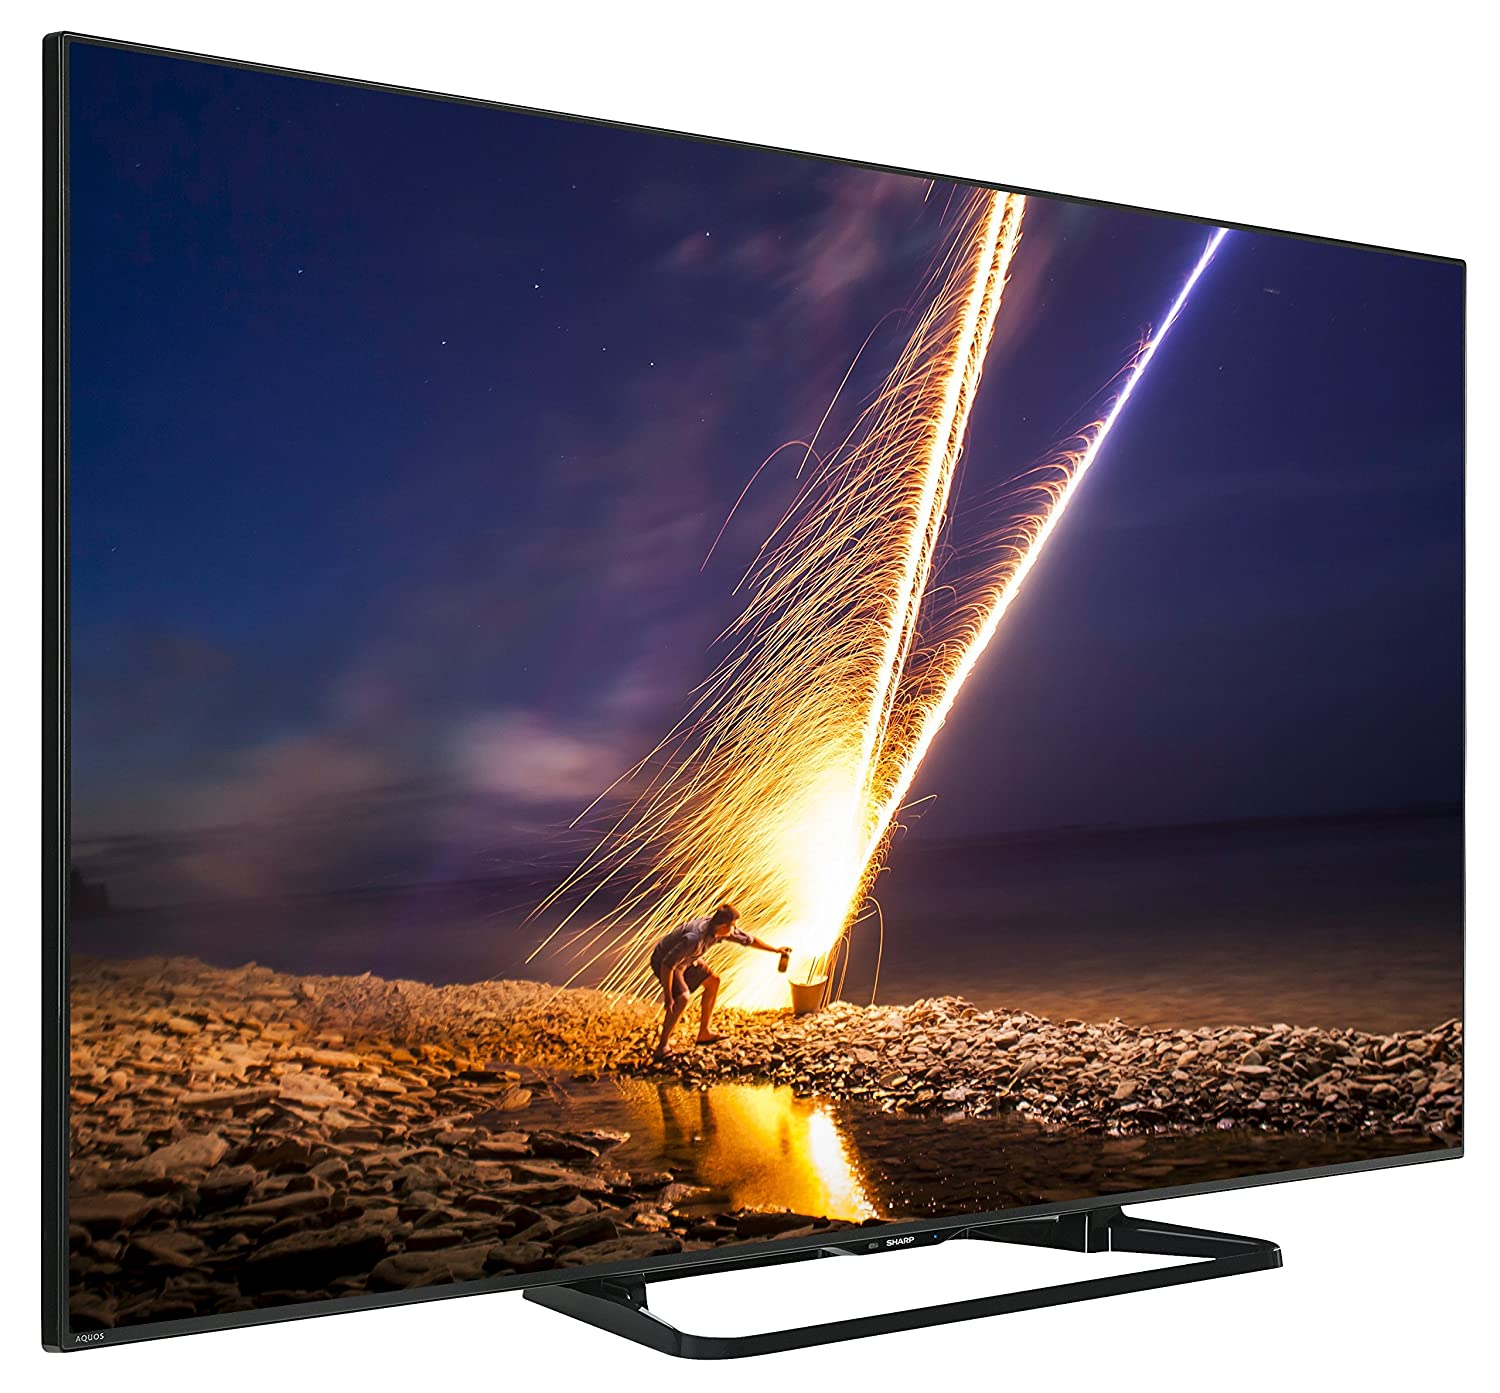 sharp 43 4k. amazon.com: sharp lc-70le660 70-inch aquos 1080p 120hz smart led tv (2014 model): electronics 43 4k